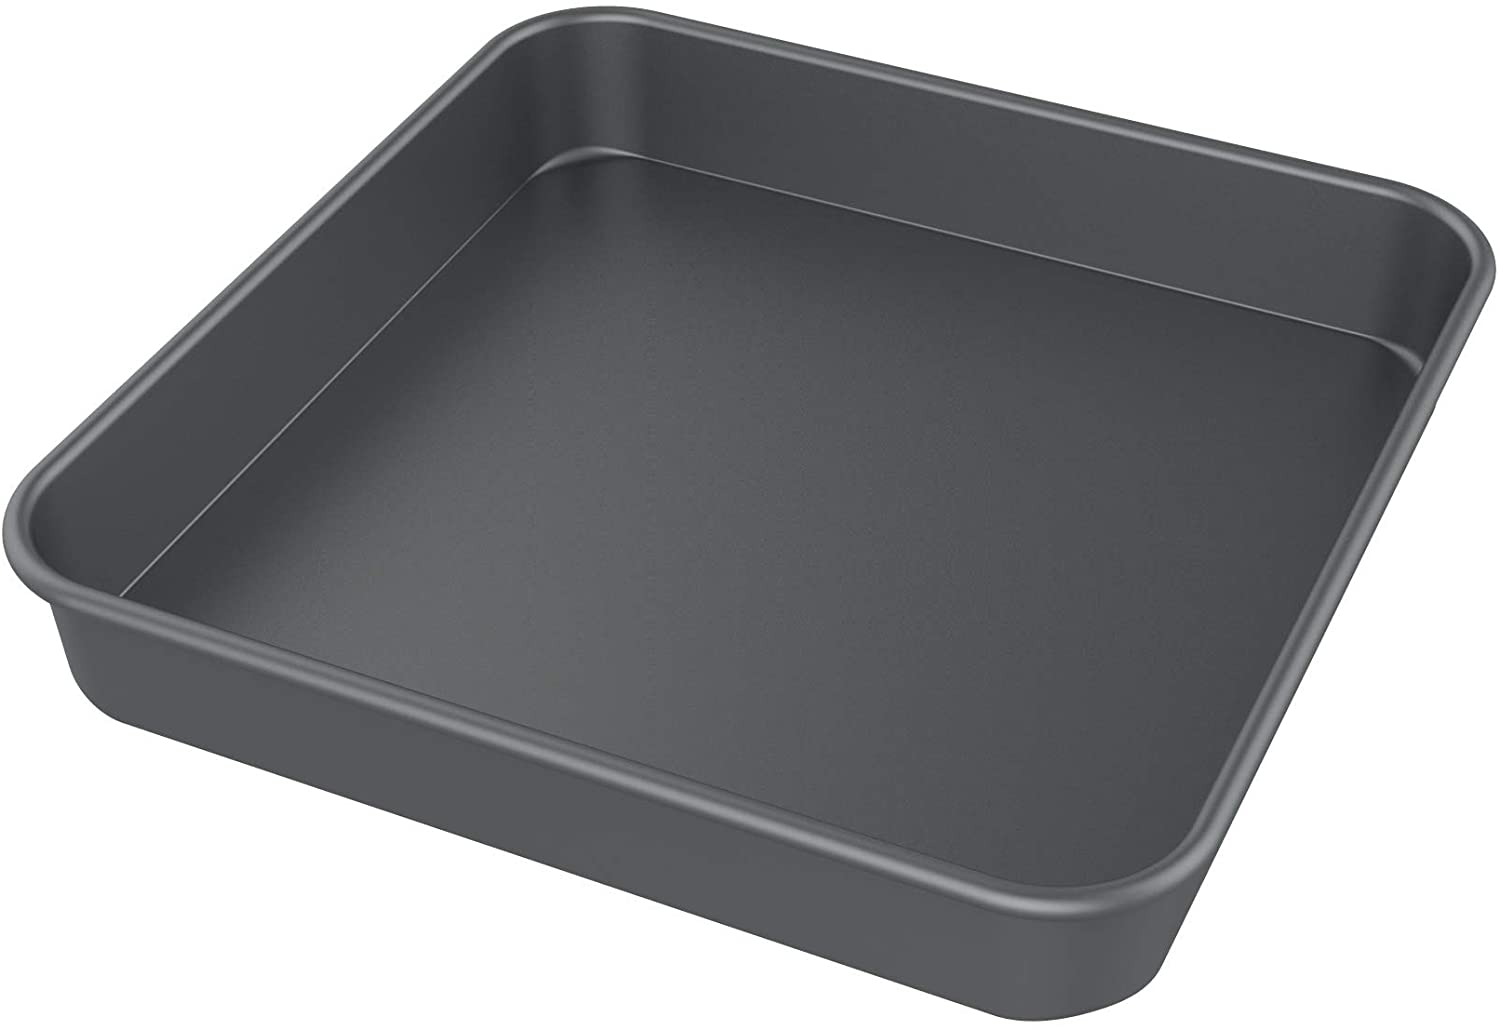 Ninja 104SG100 Casserole Pan, Medium, Grey